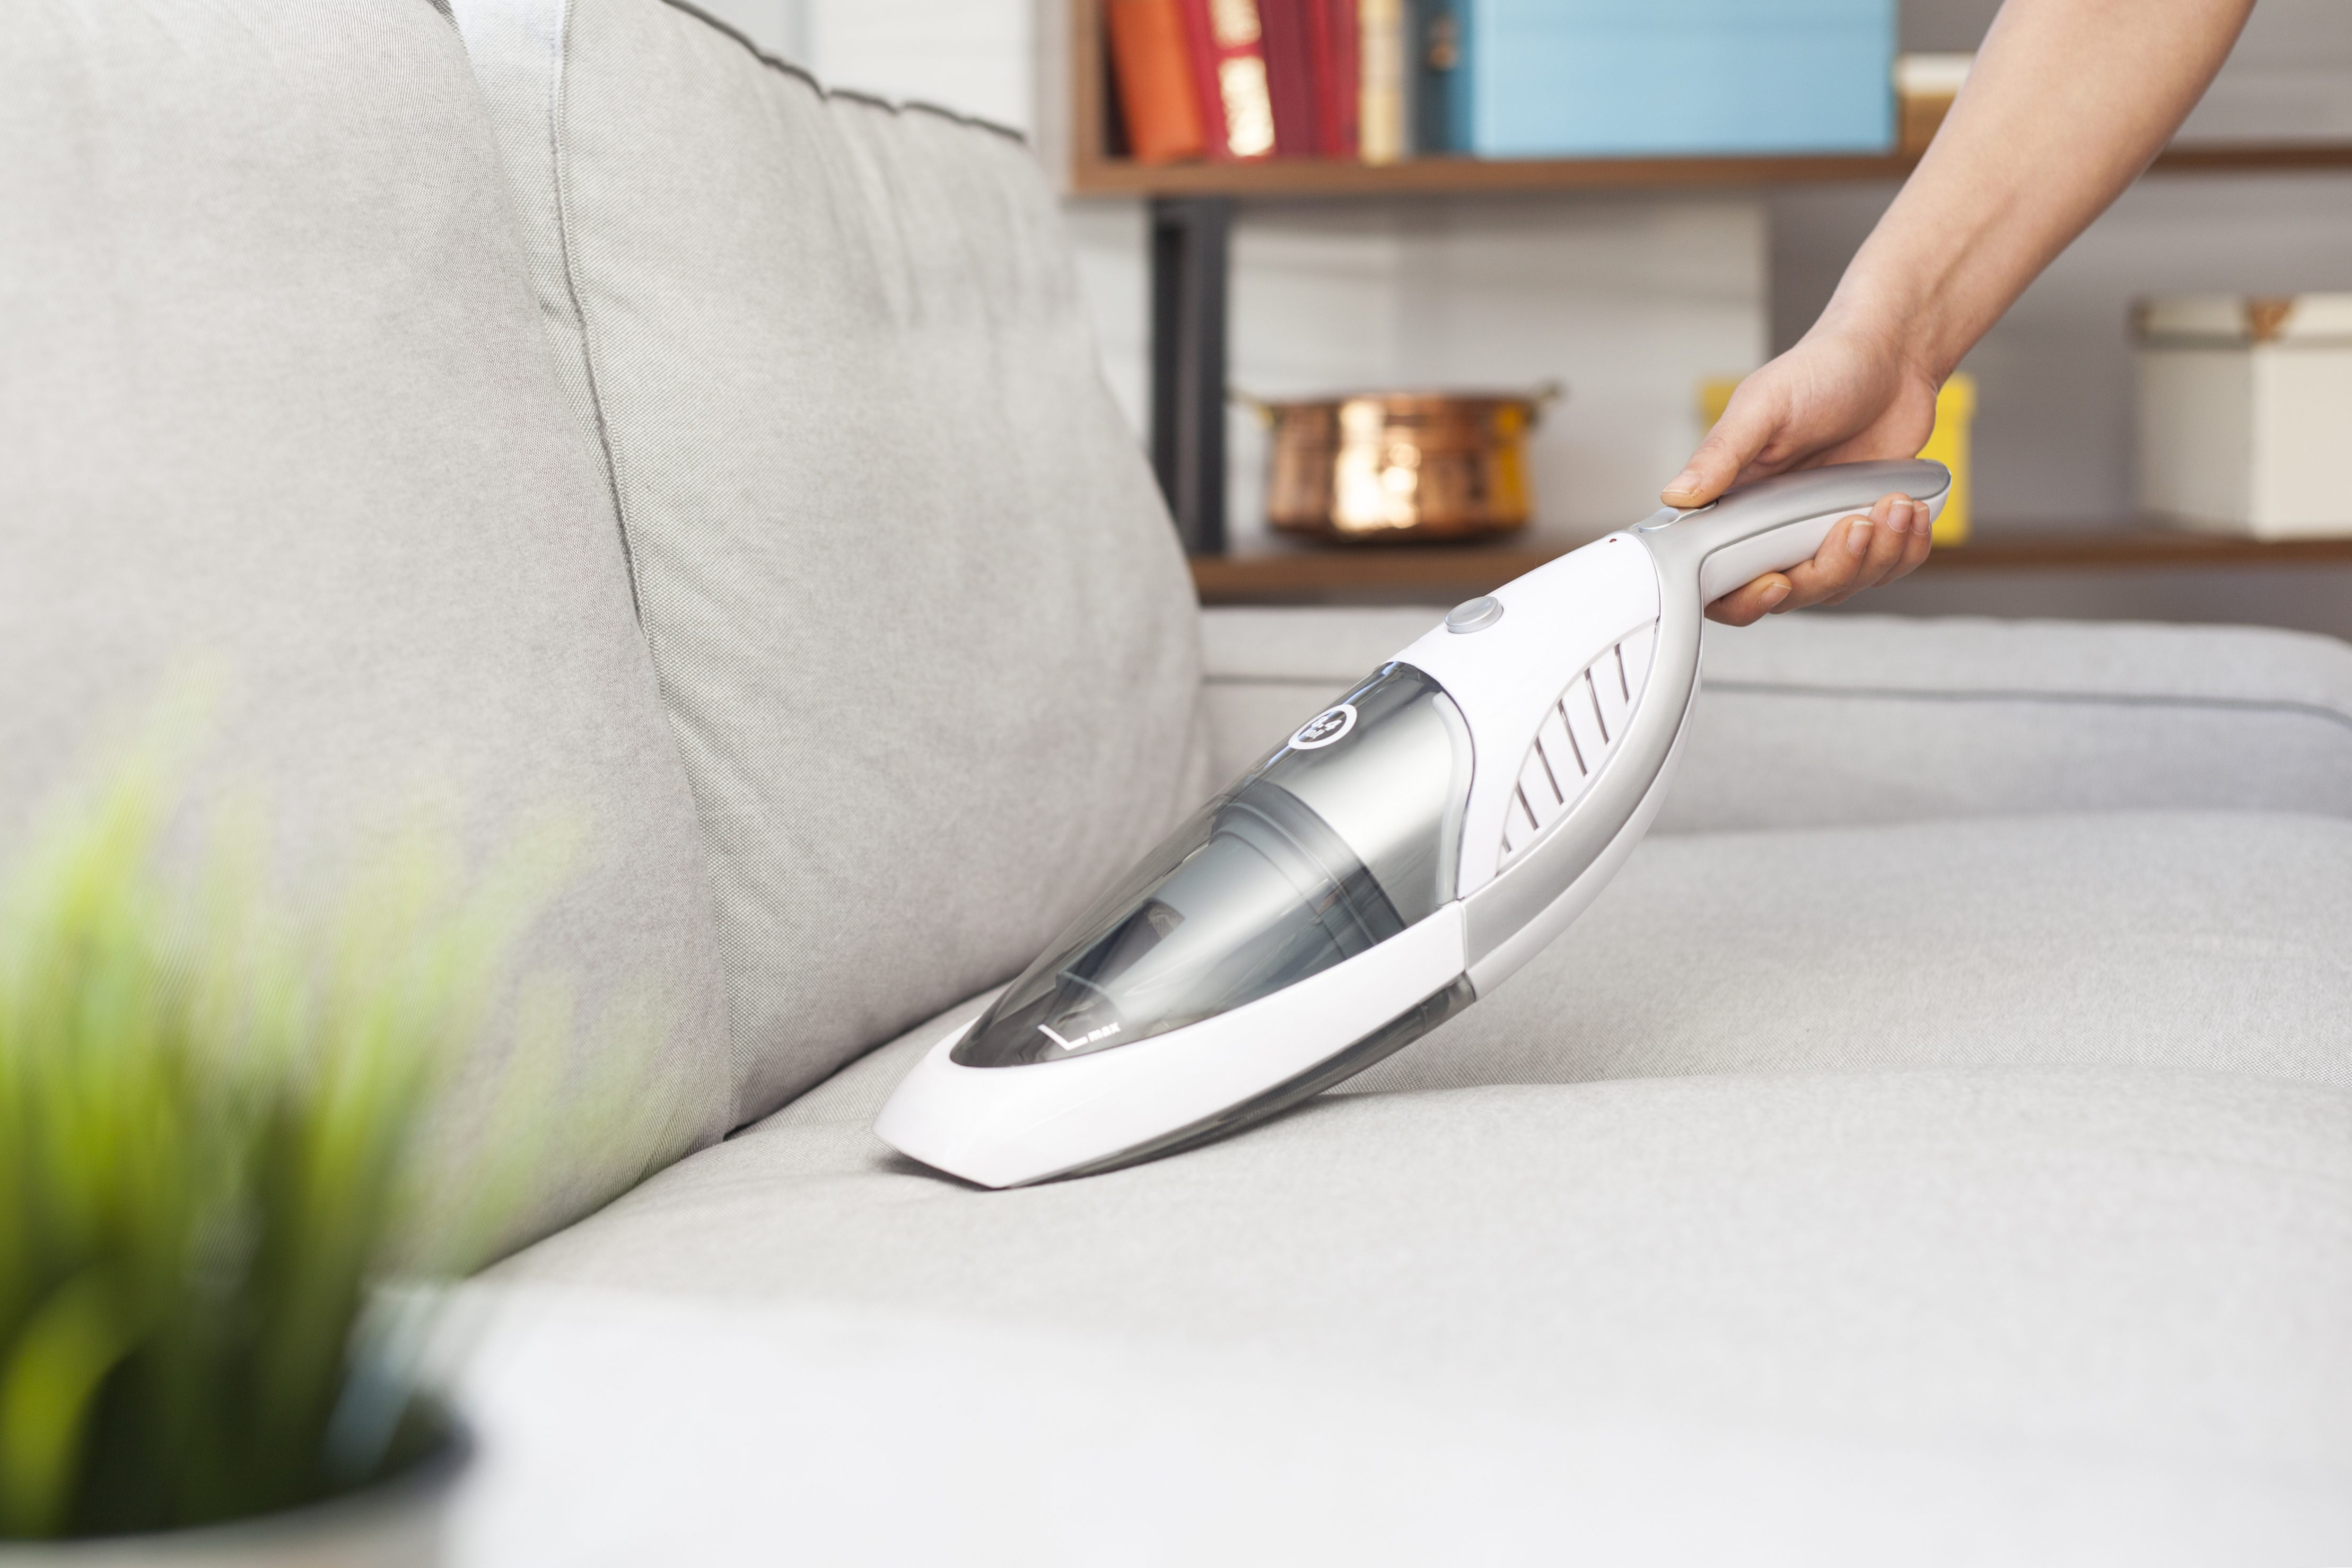 Woman with handheld vacuum cleaning on sofa; Shutterstock ID 511880752